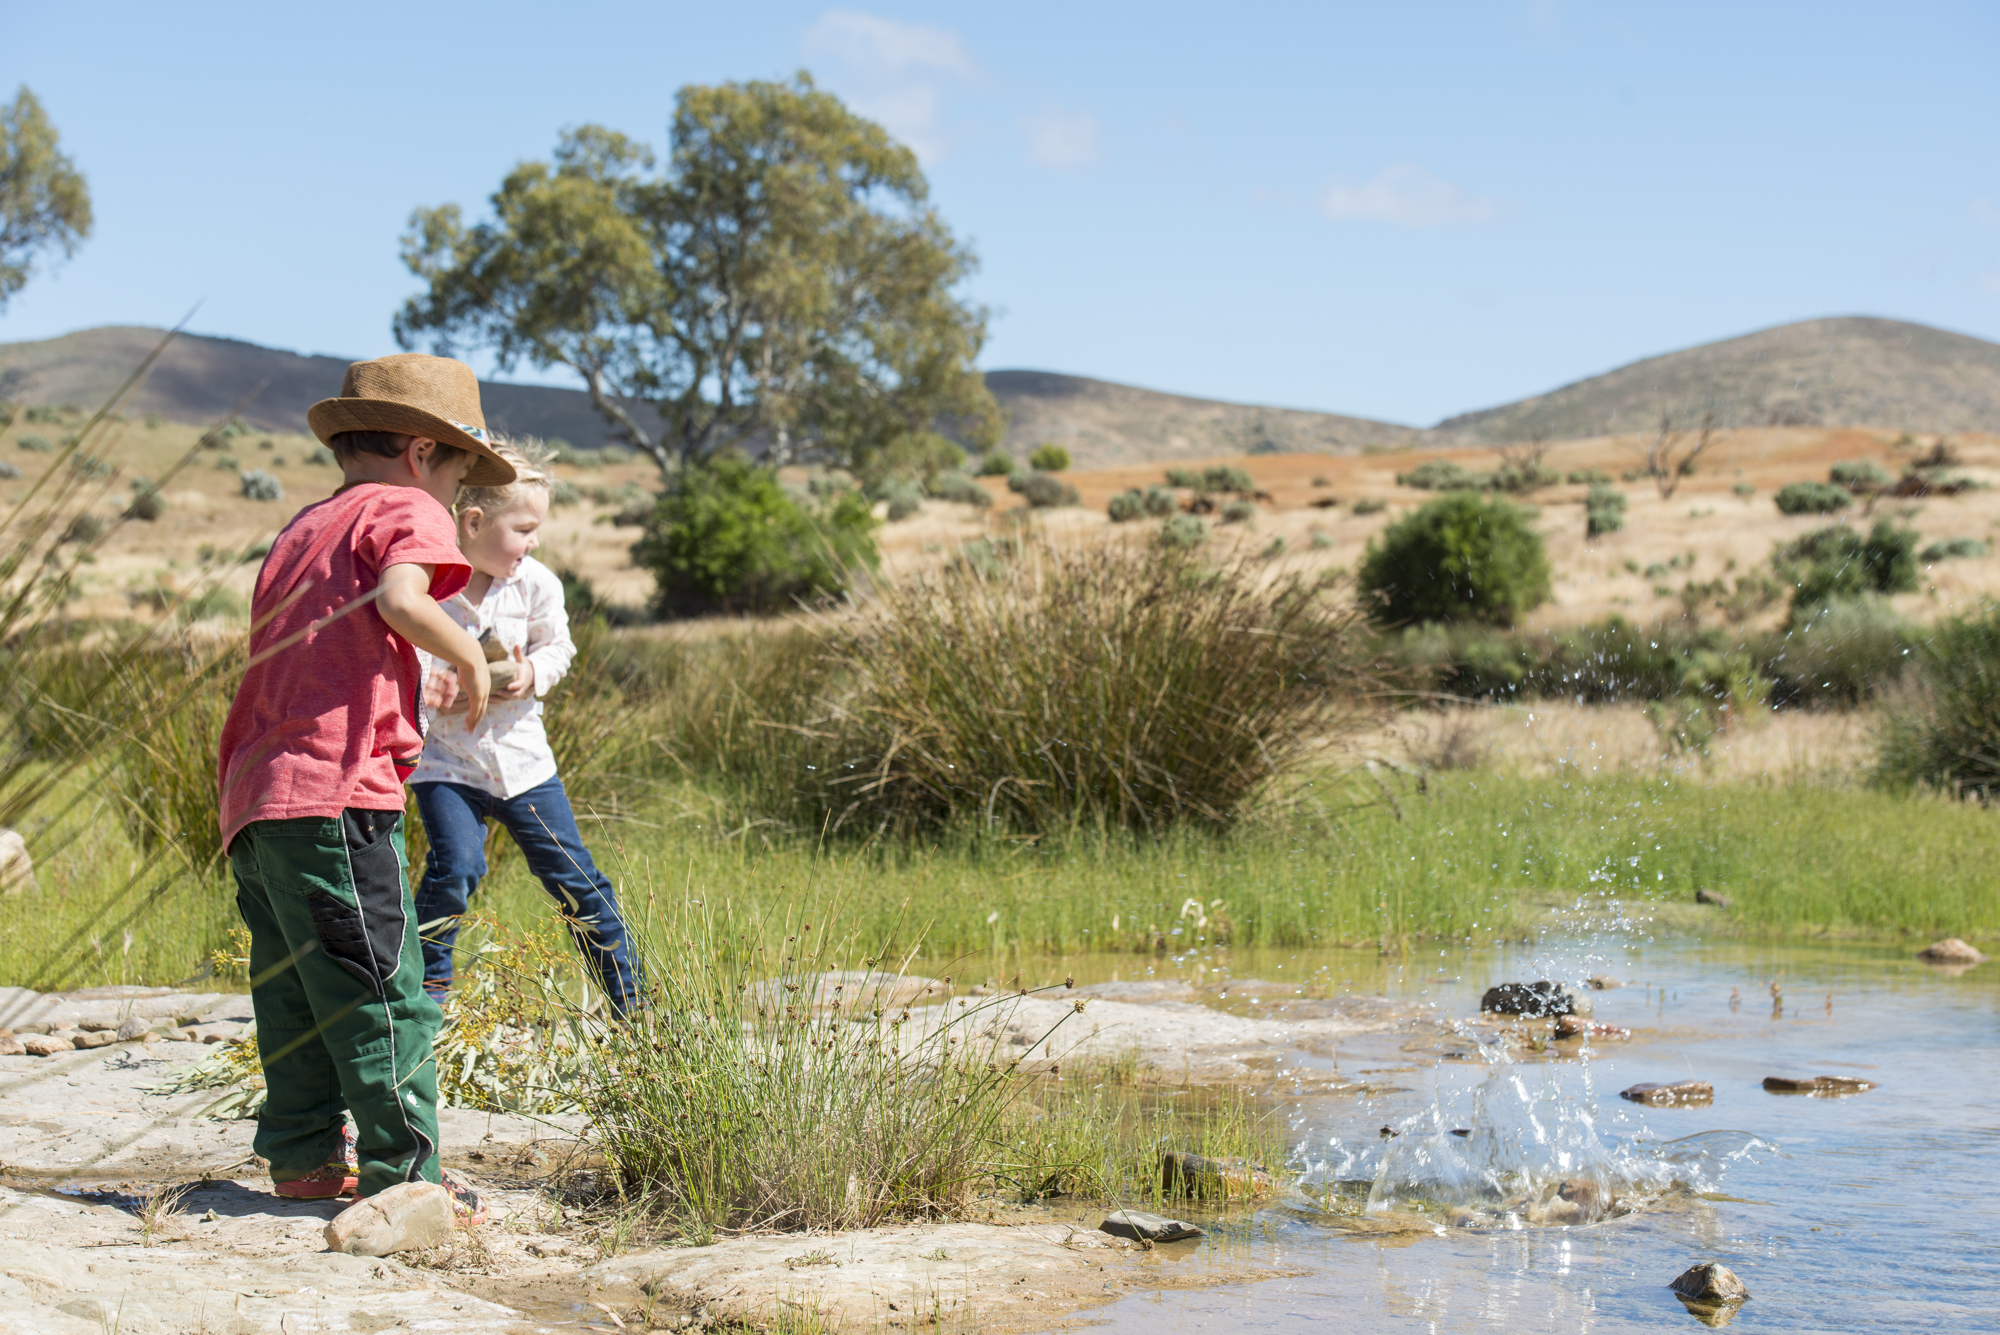 Family stays at an outback station. Kids having fun in the natural space. Nice weather, casual, safe, fun. That's what families would want to see if looking to go outback for some quality time together.